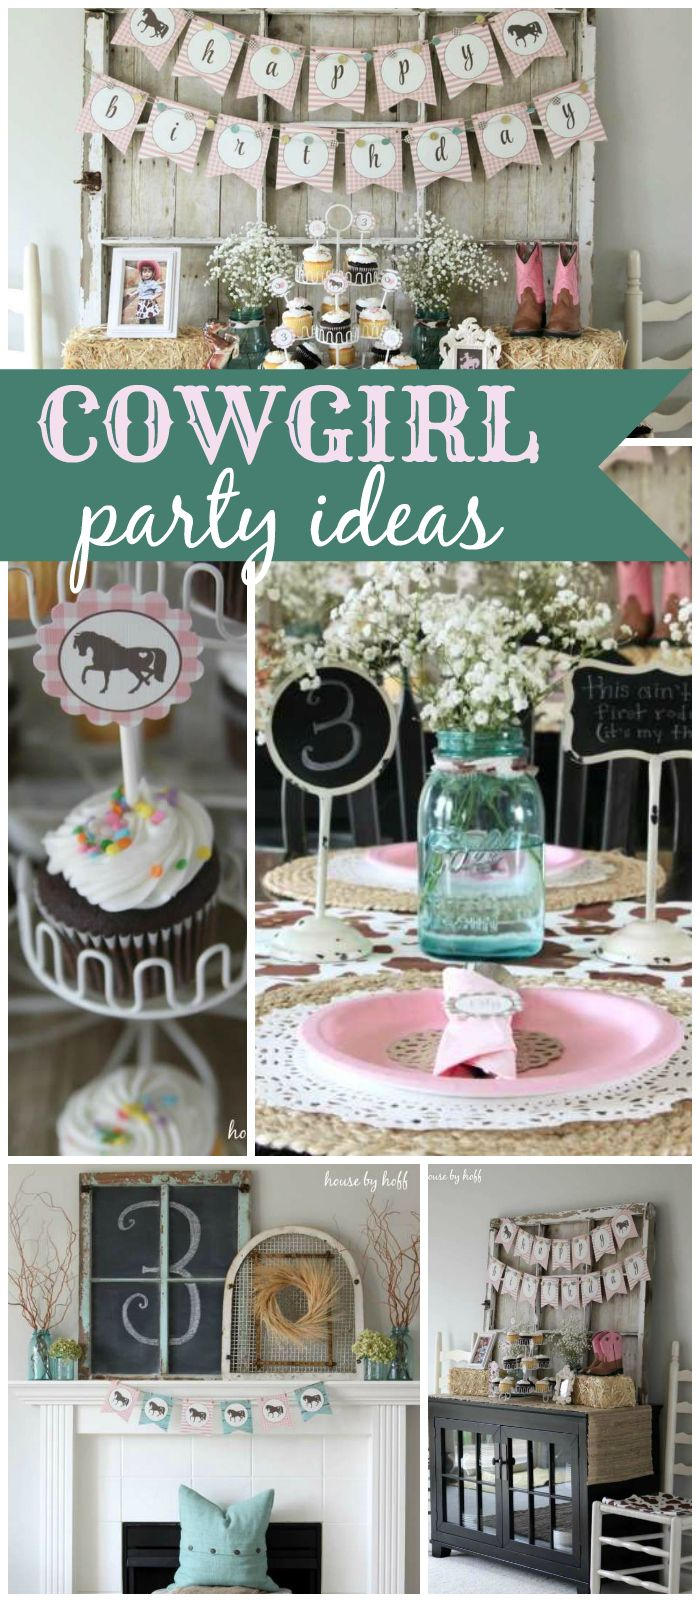 Here's an amazing cowgirl party that you just have to see! See more party ideas at CatchMyParty.com!